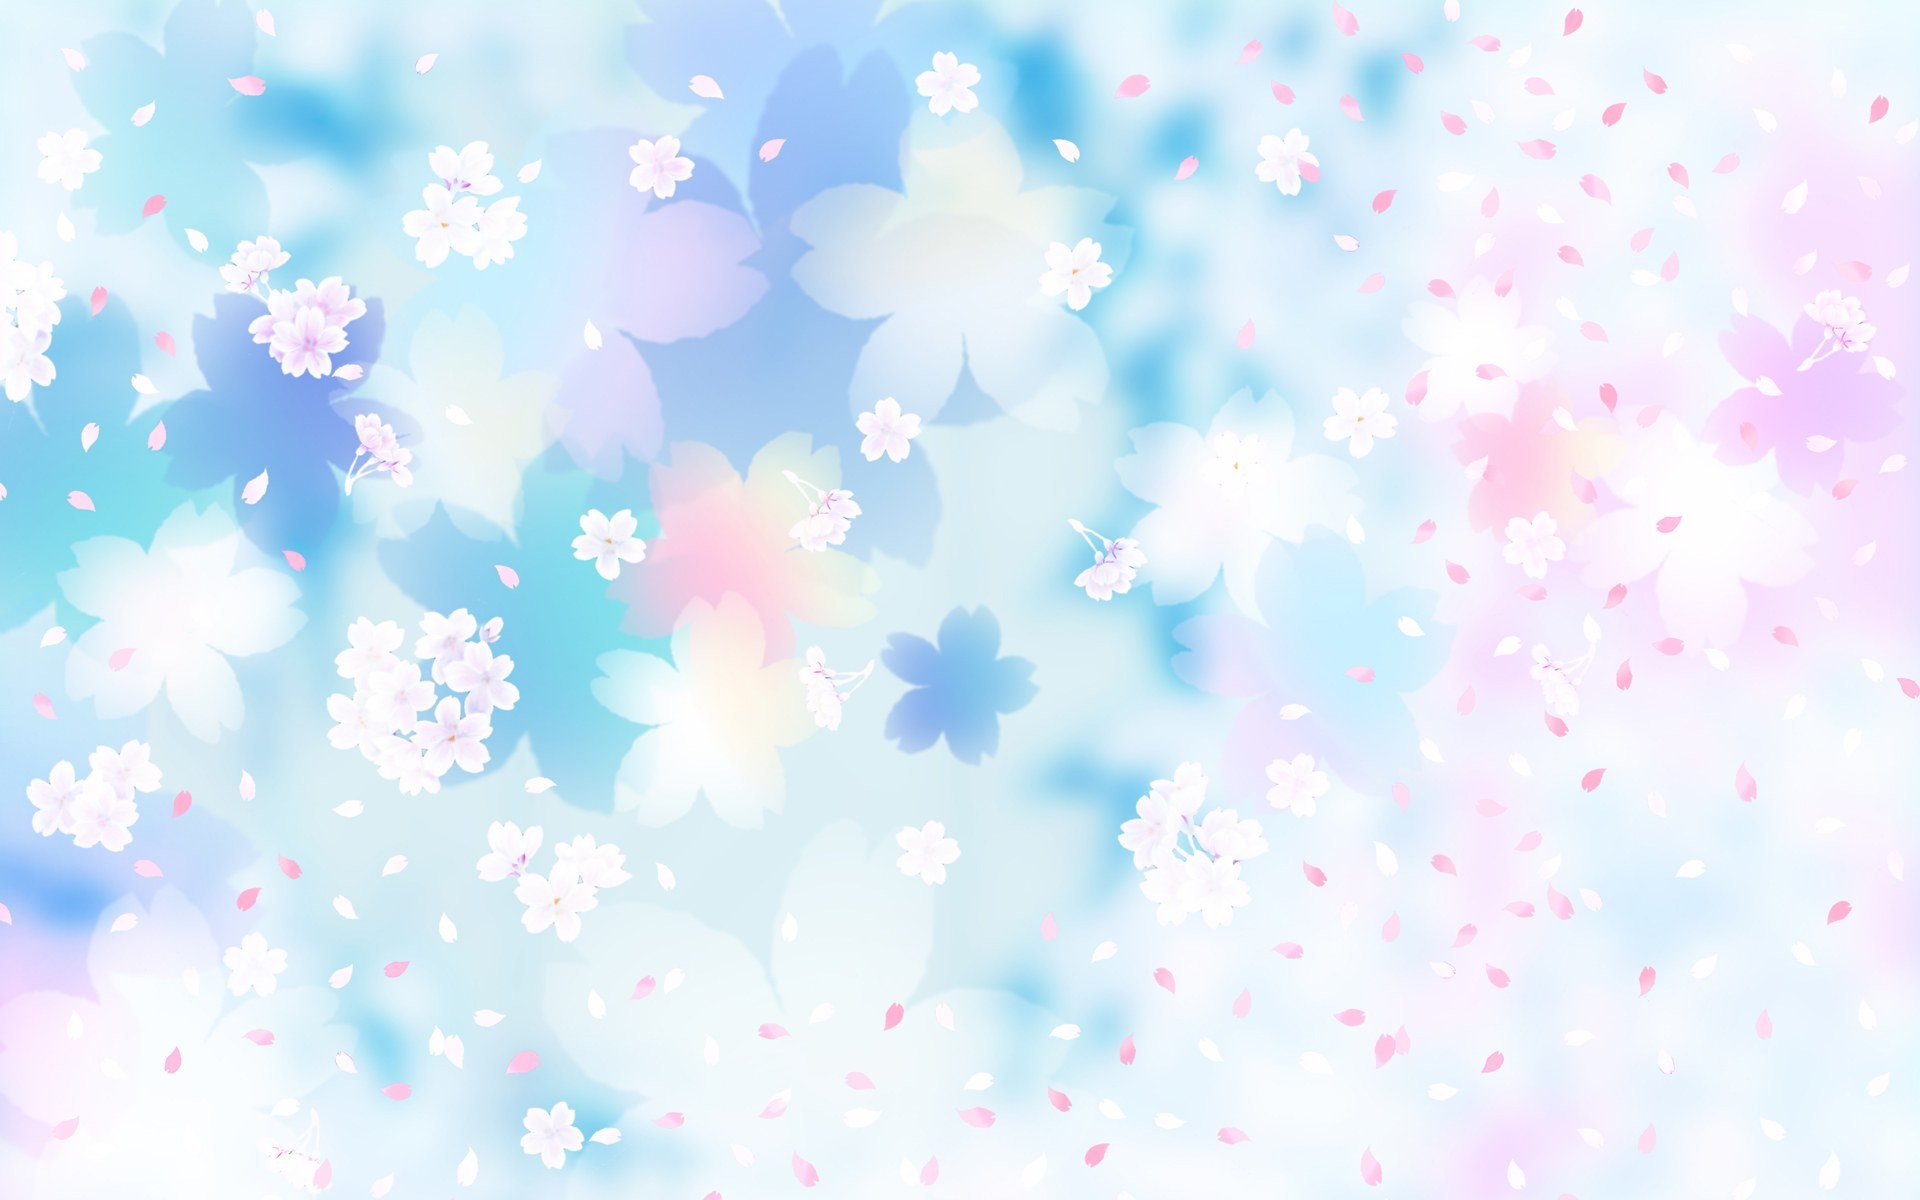 Wallpaper pink and blue flowers 33 images 1920x1200 pink and blue floral background flower backgro mightylinksfo